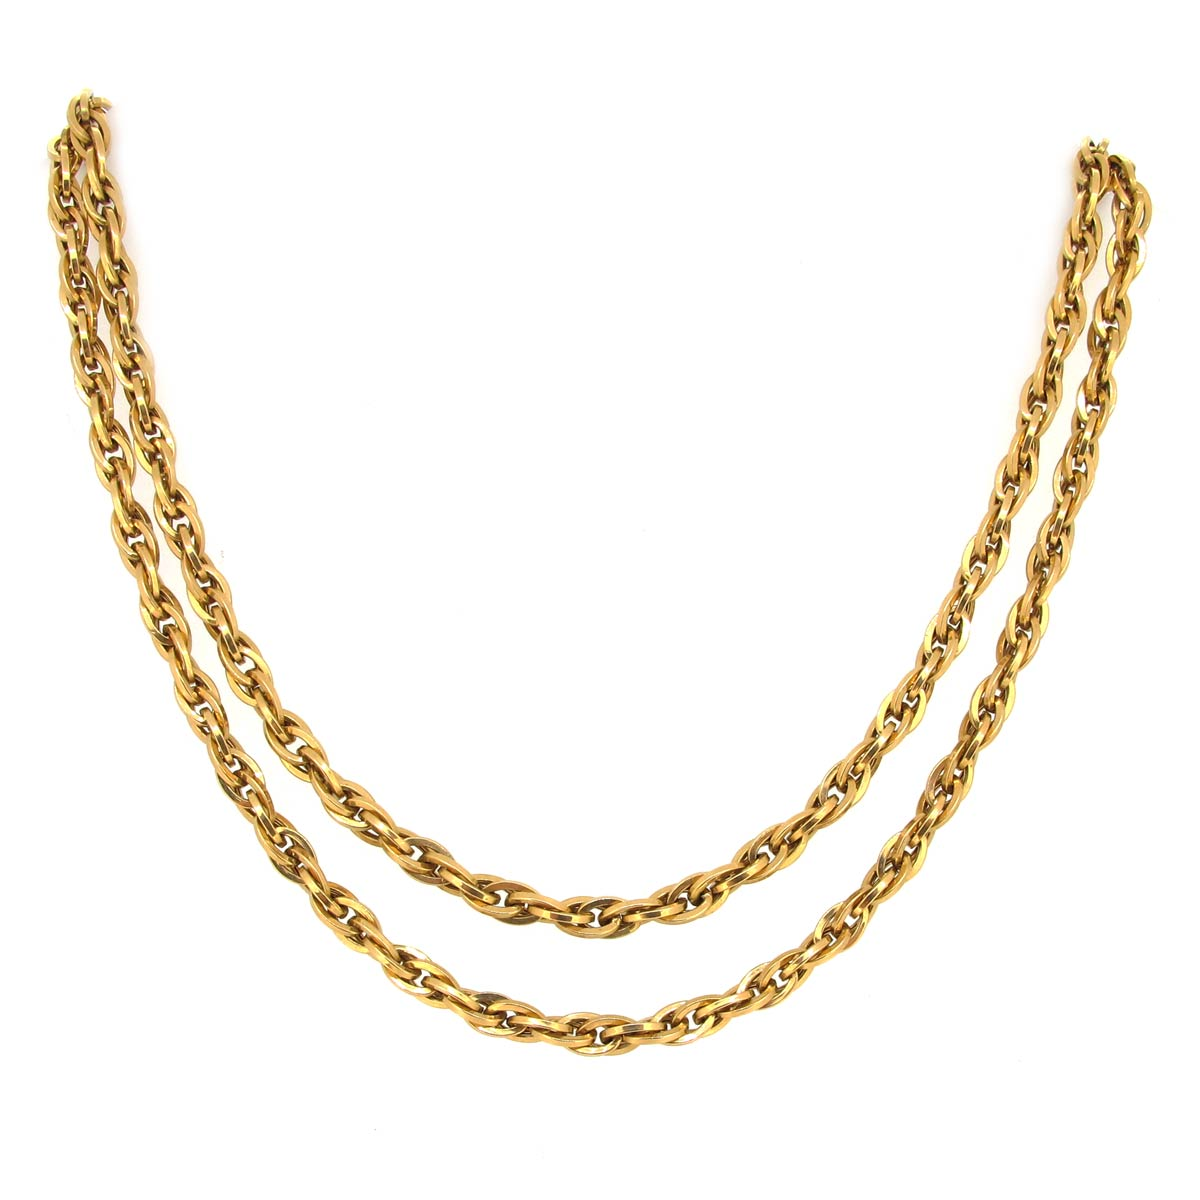 18ct Gold Necklace/ Guard Chain